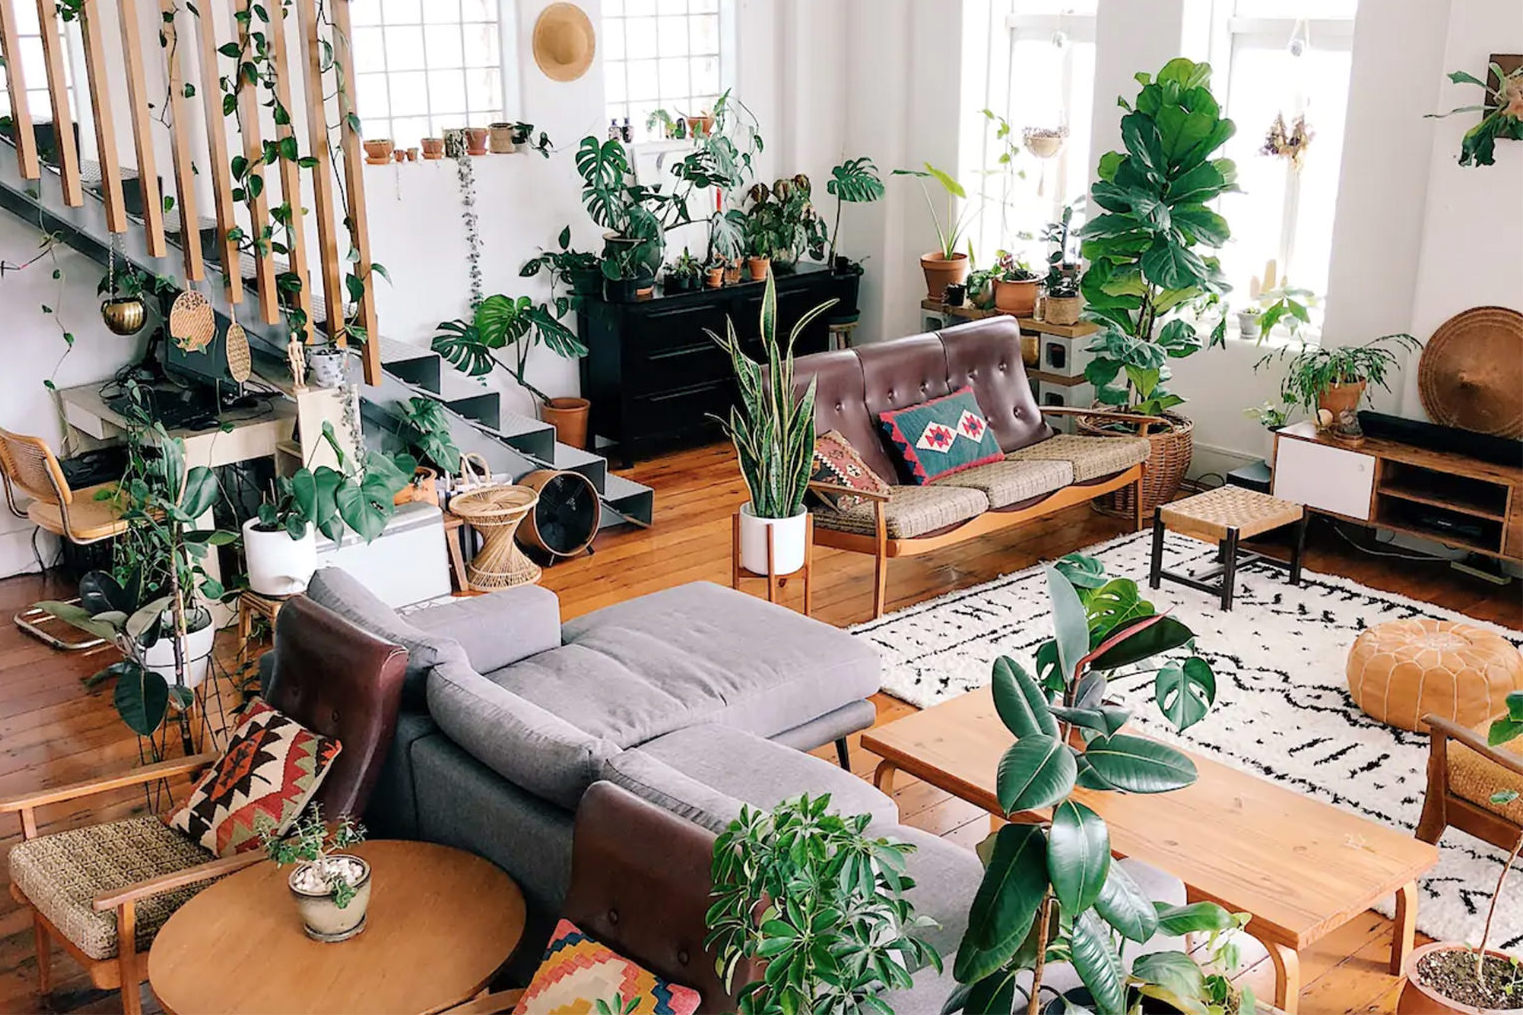 A beautiful plant-filled Airbnb space in Auckland